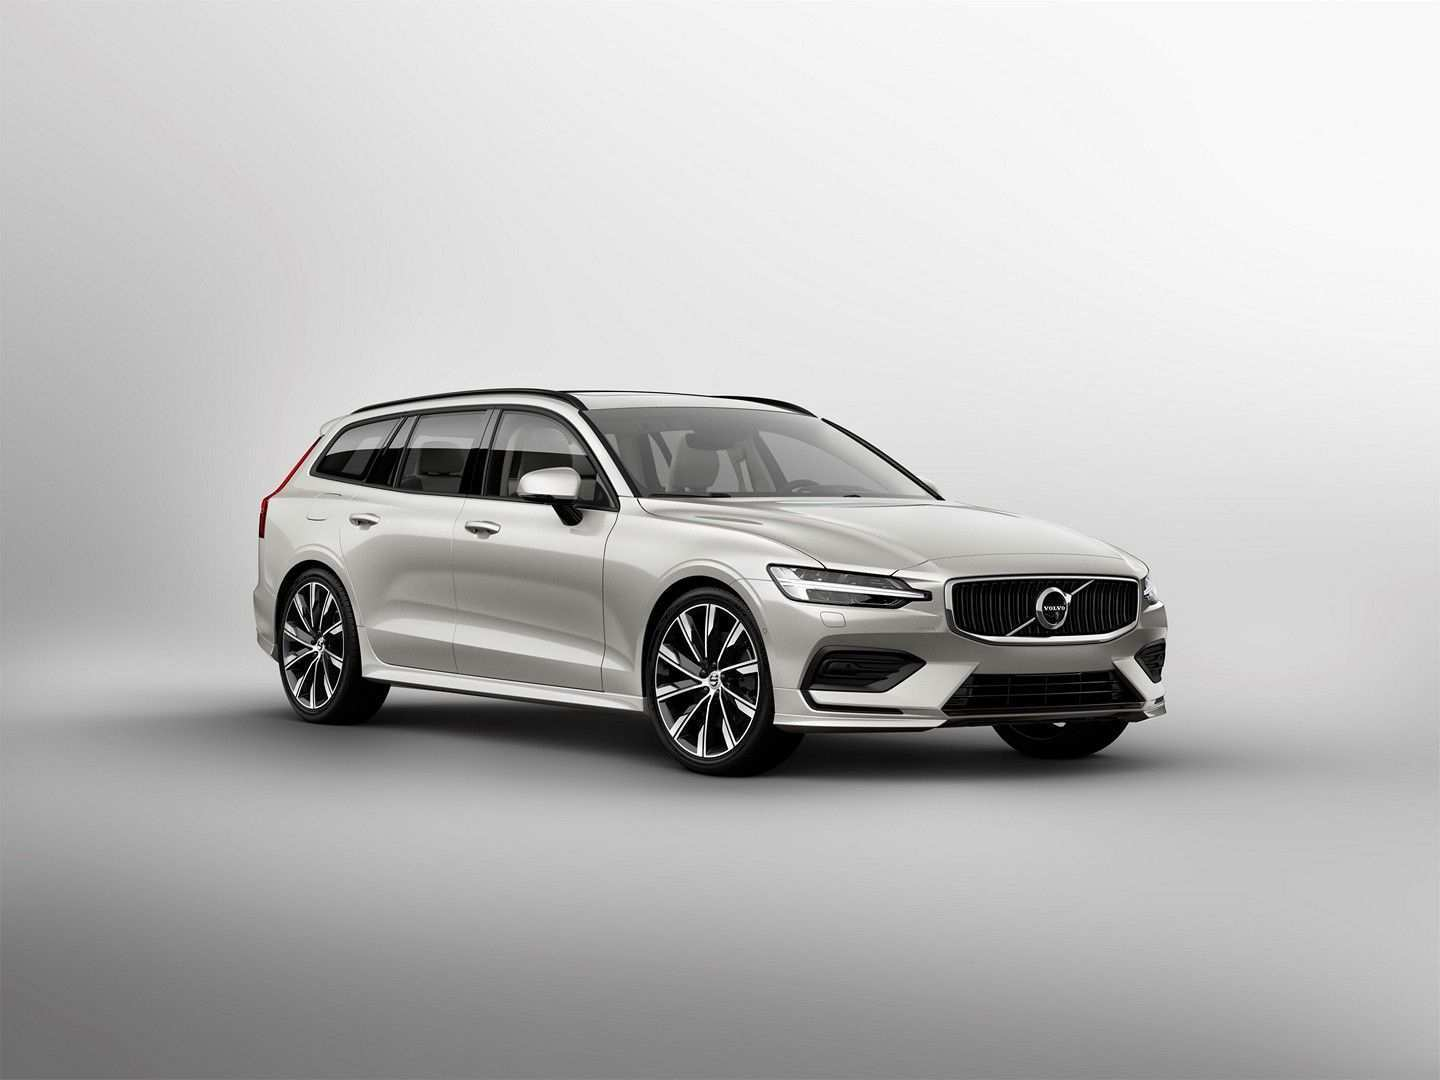 58 Concept of The Volvo Phev 2019 Performance And New Engine Pictures for The Volvo Phev 2019 Performance And New Engine